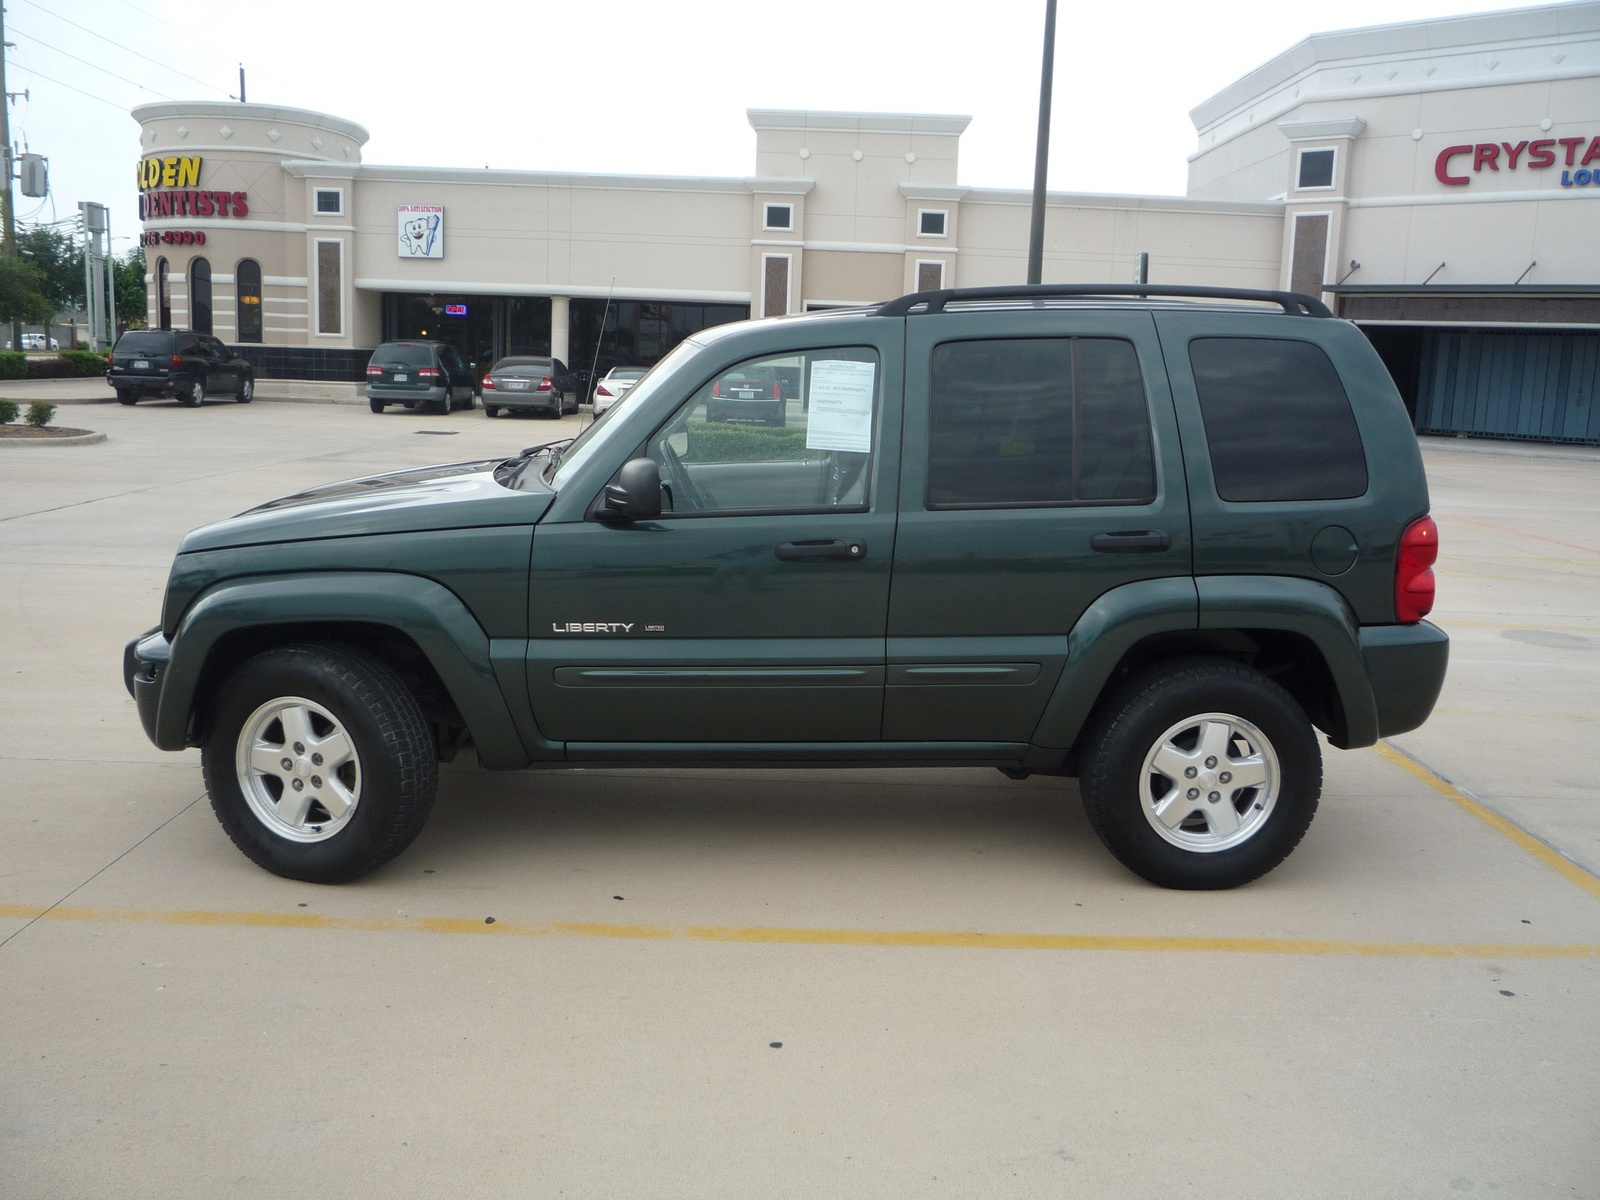 2002 jeep liberty limited picture of 2002 jeep liberty limited. Cars Review. Best American Auto & Cars Review